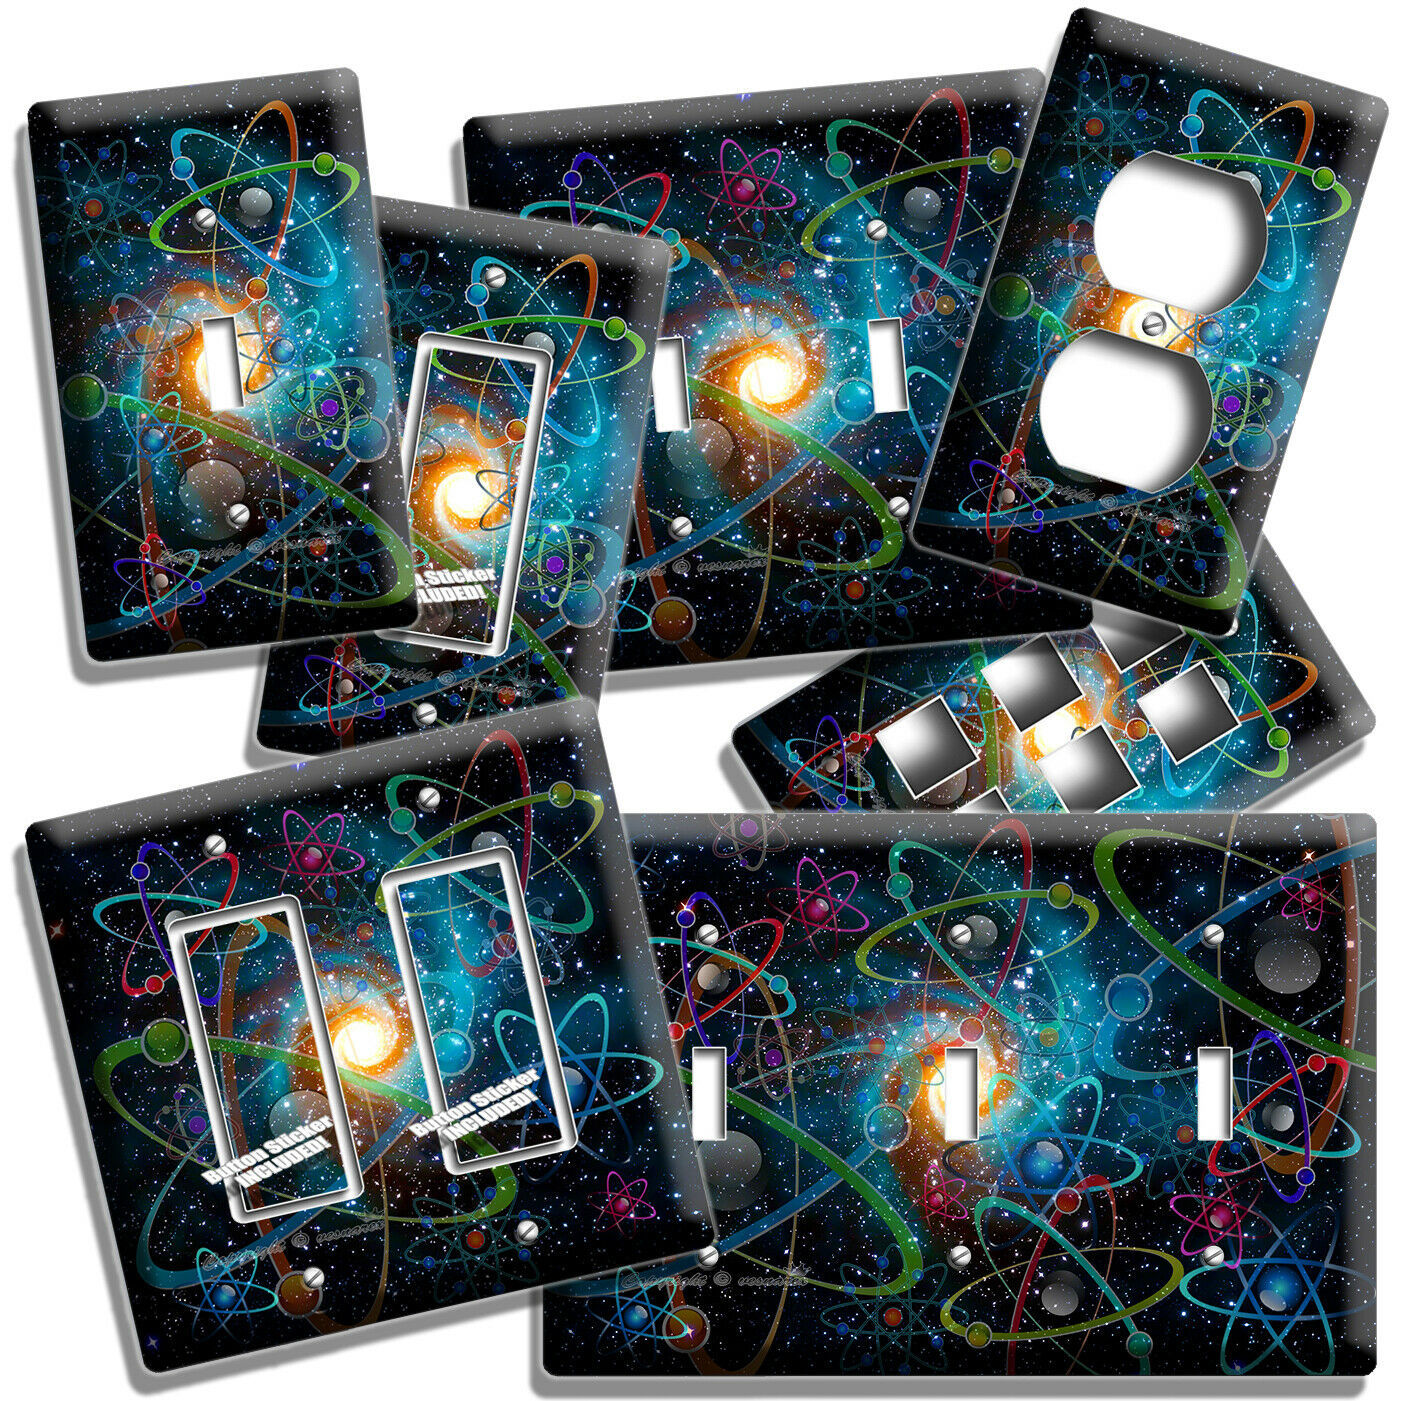 BIG BANG UNIVERSE ATOMS SPACE SCIENCE LIGHT SWITCH OUTLET WALL PLATES ROOM DECOR